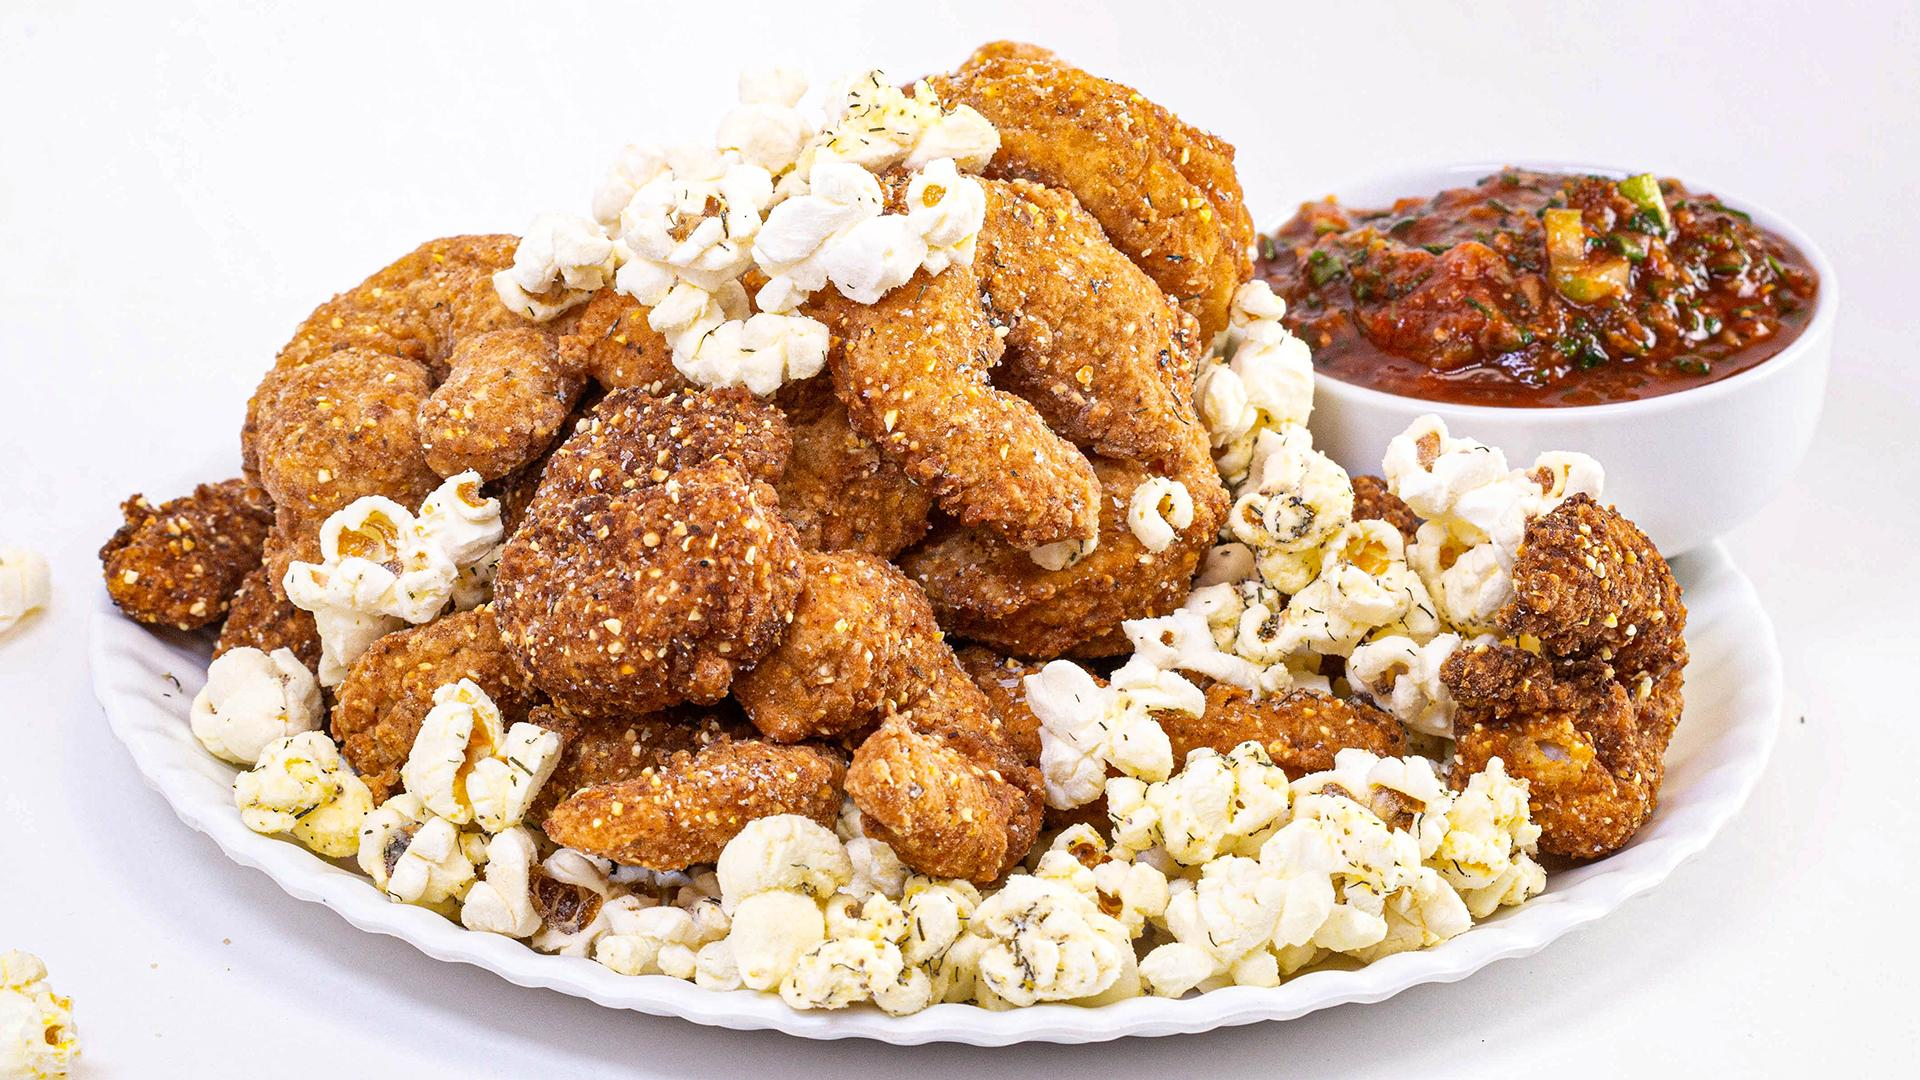 Old Bay Popcorn Shrimp With White Cheddar Popcorn Recipe Rachael Ray Show